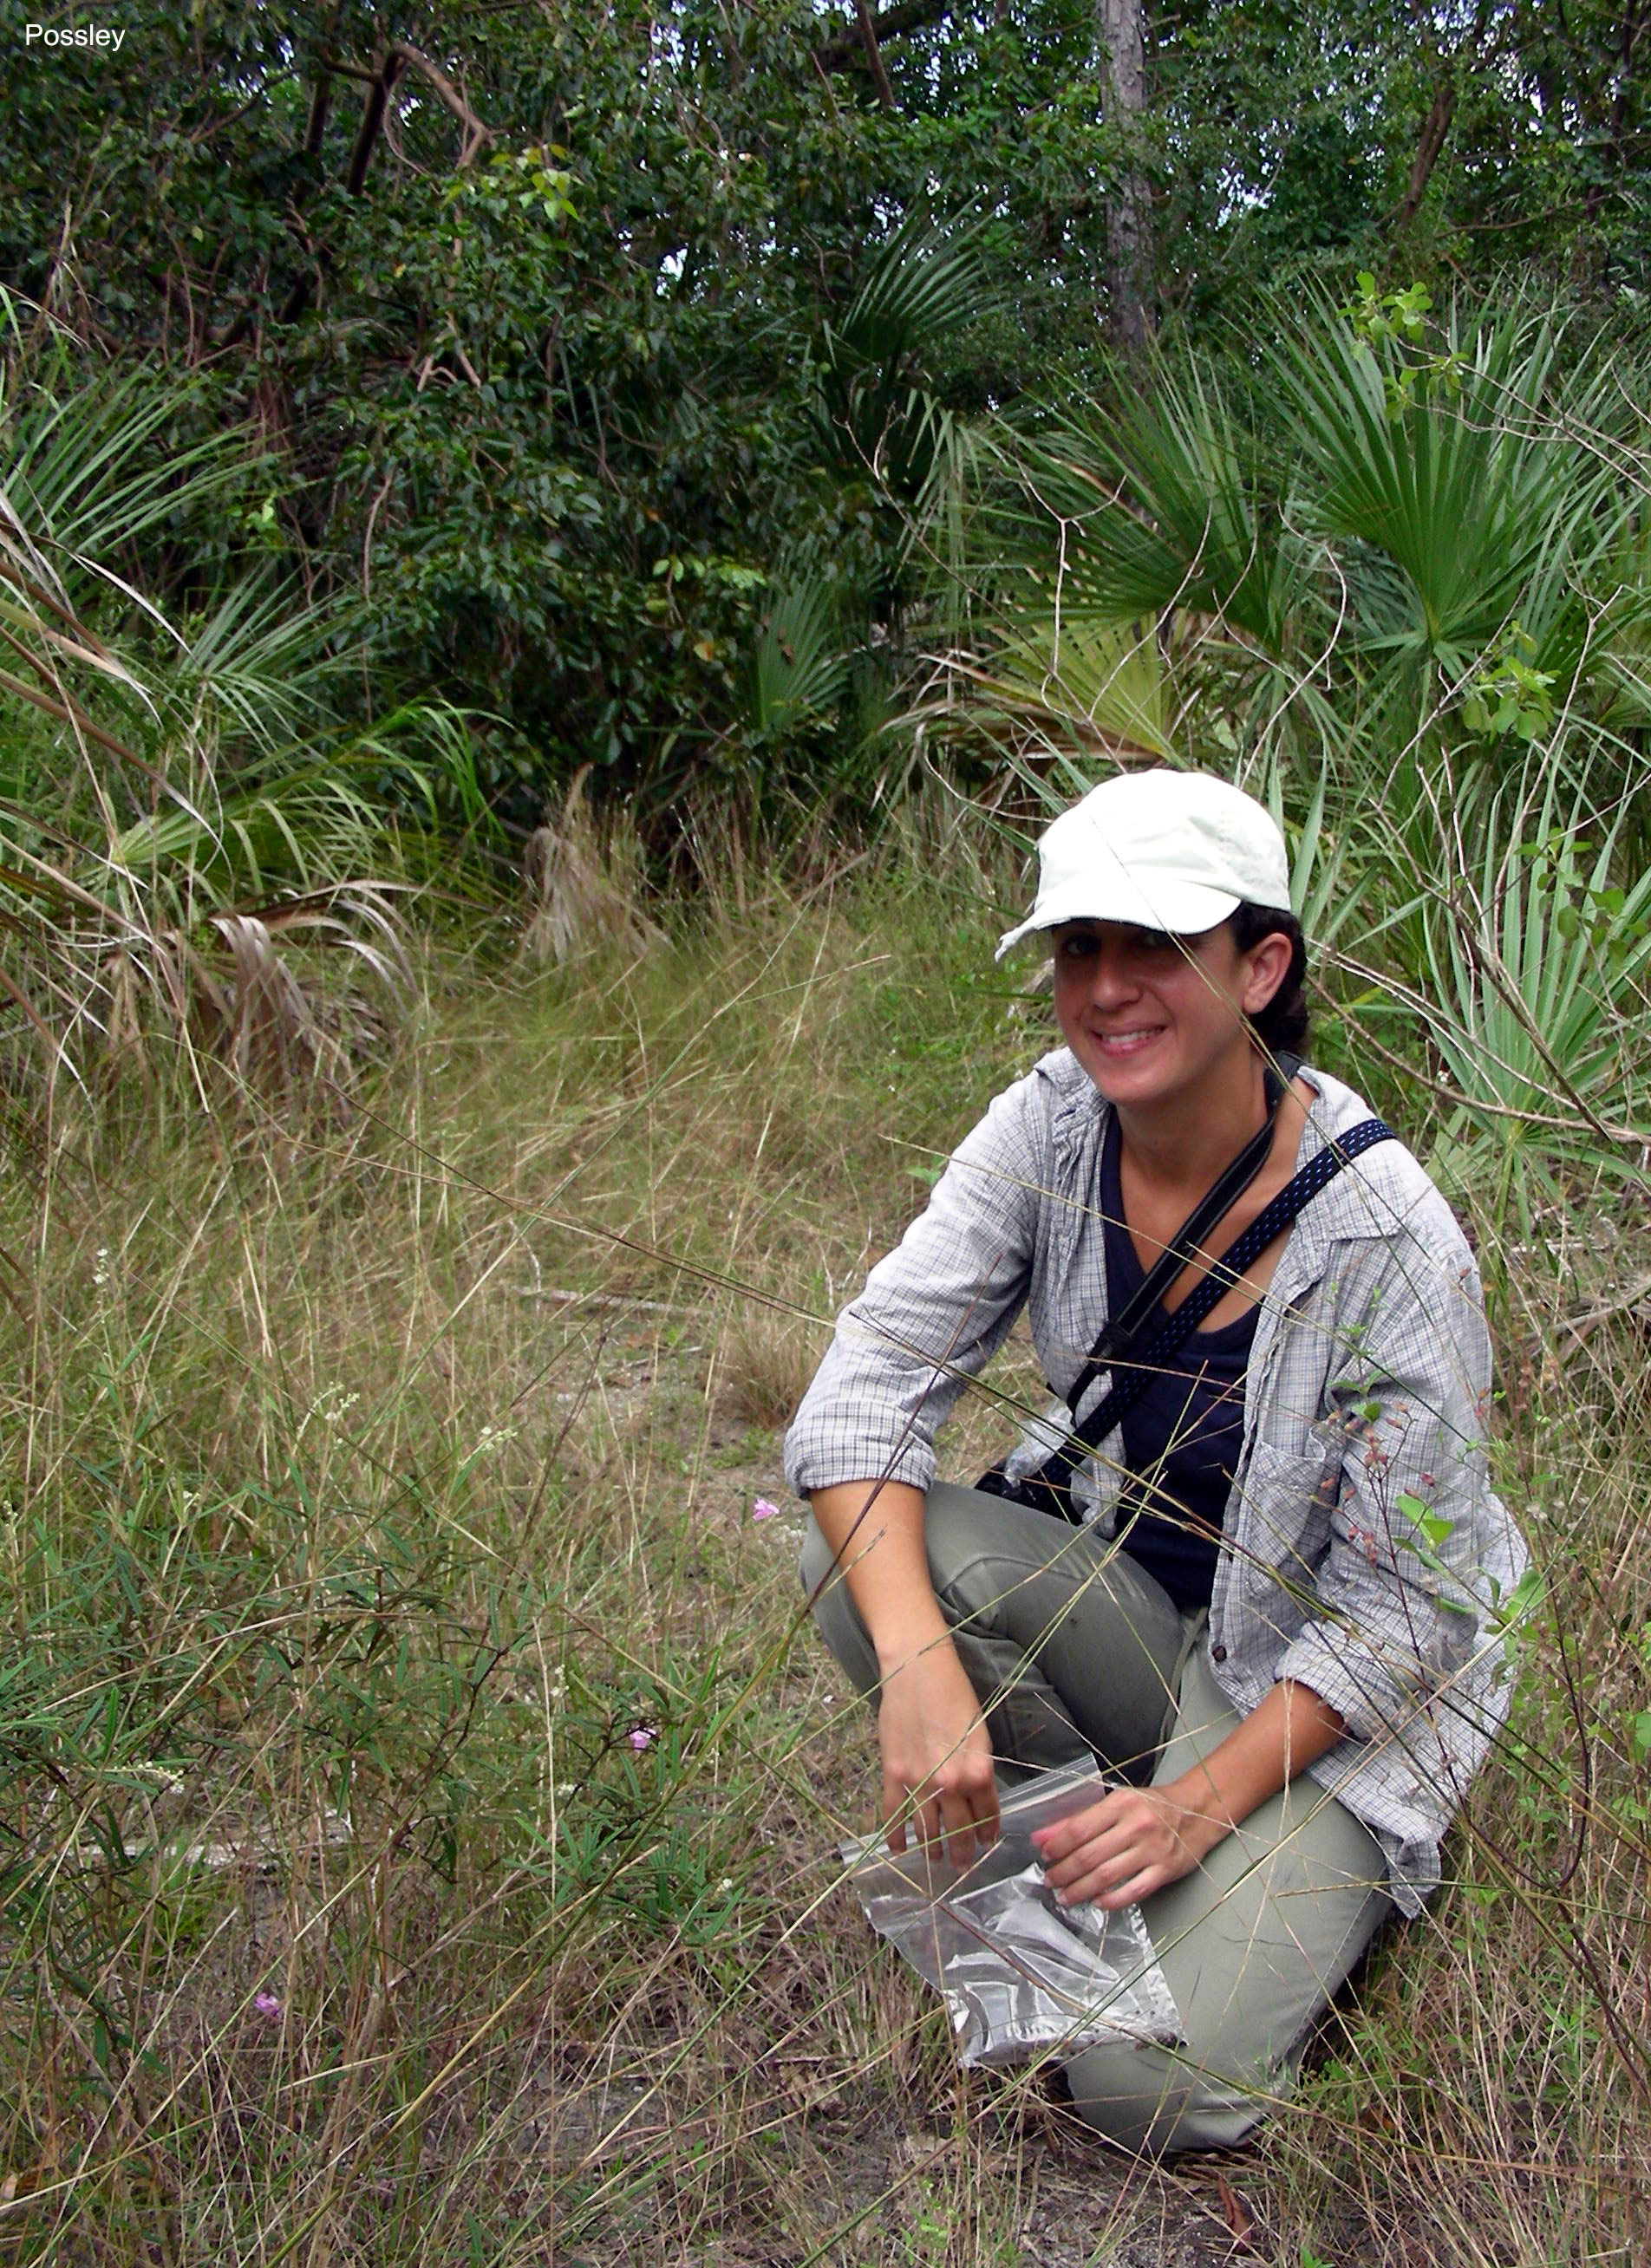 Anne Frances collecting Agalinis seeds at R. Hardy Matheson Preserve in 2006.